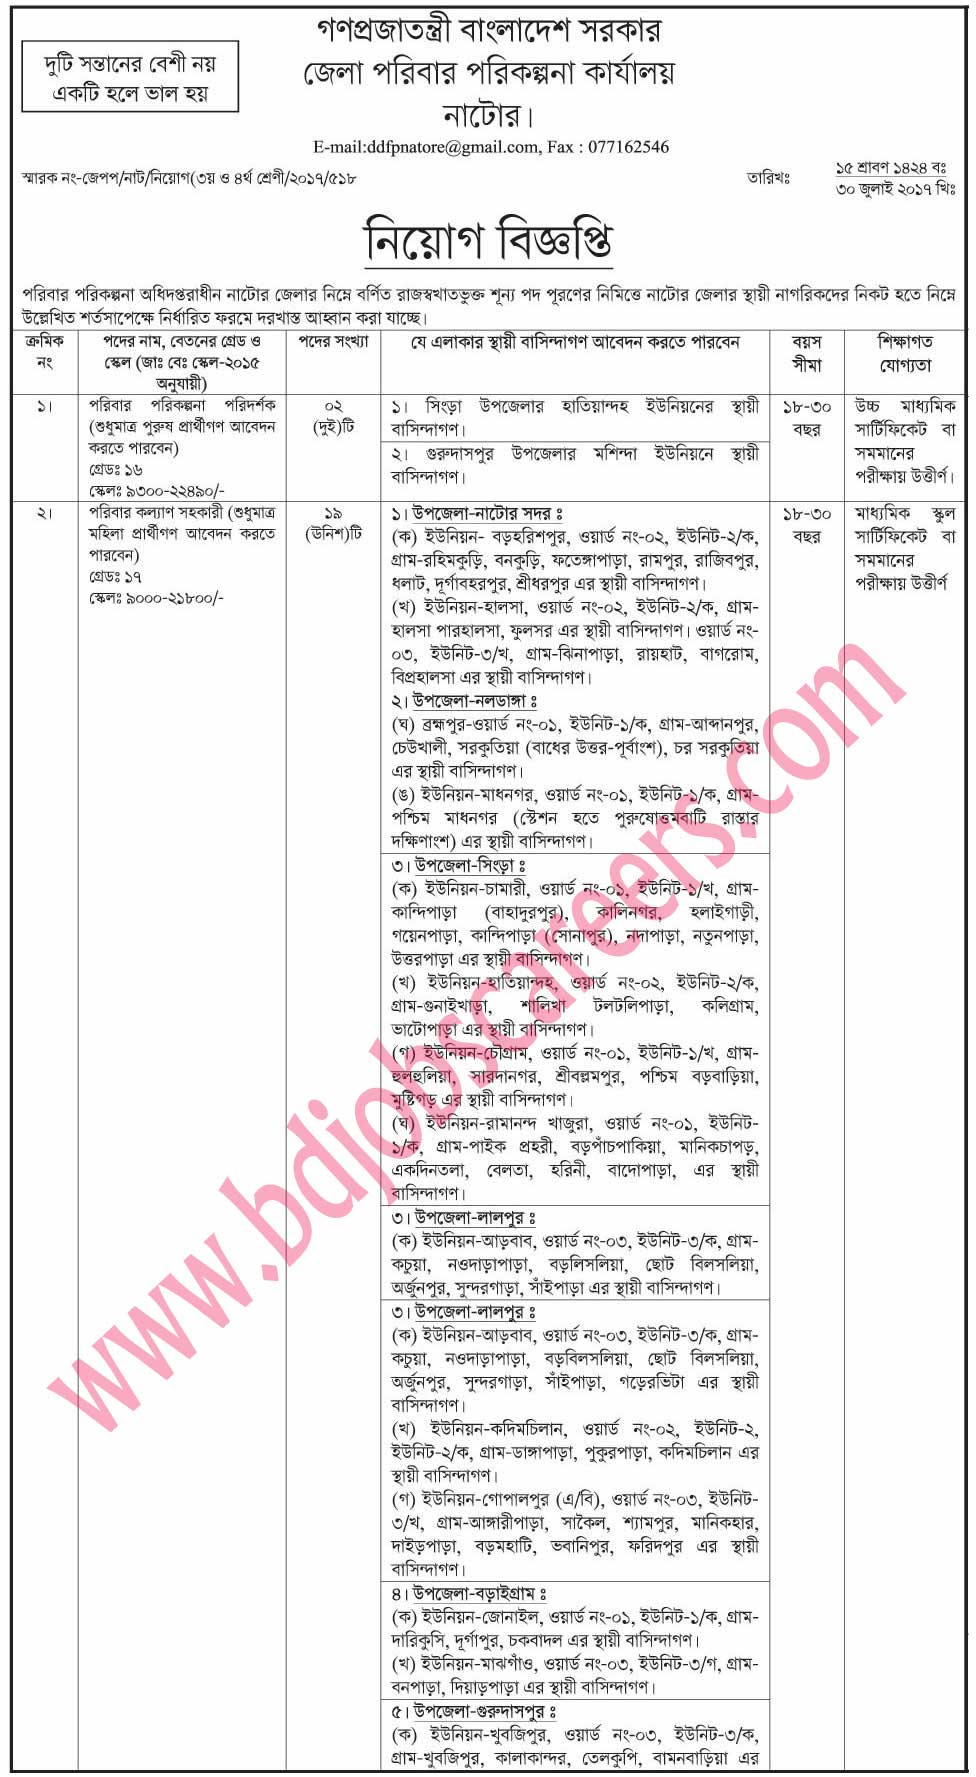 Natore District Family Planning Office Job Circular 2017